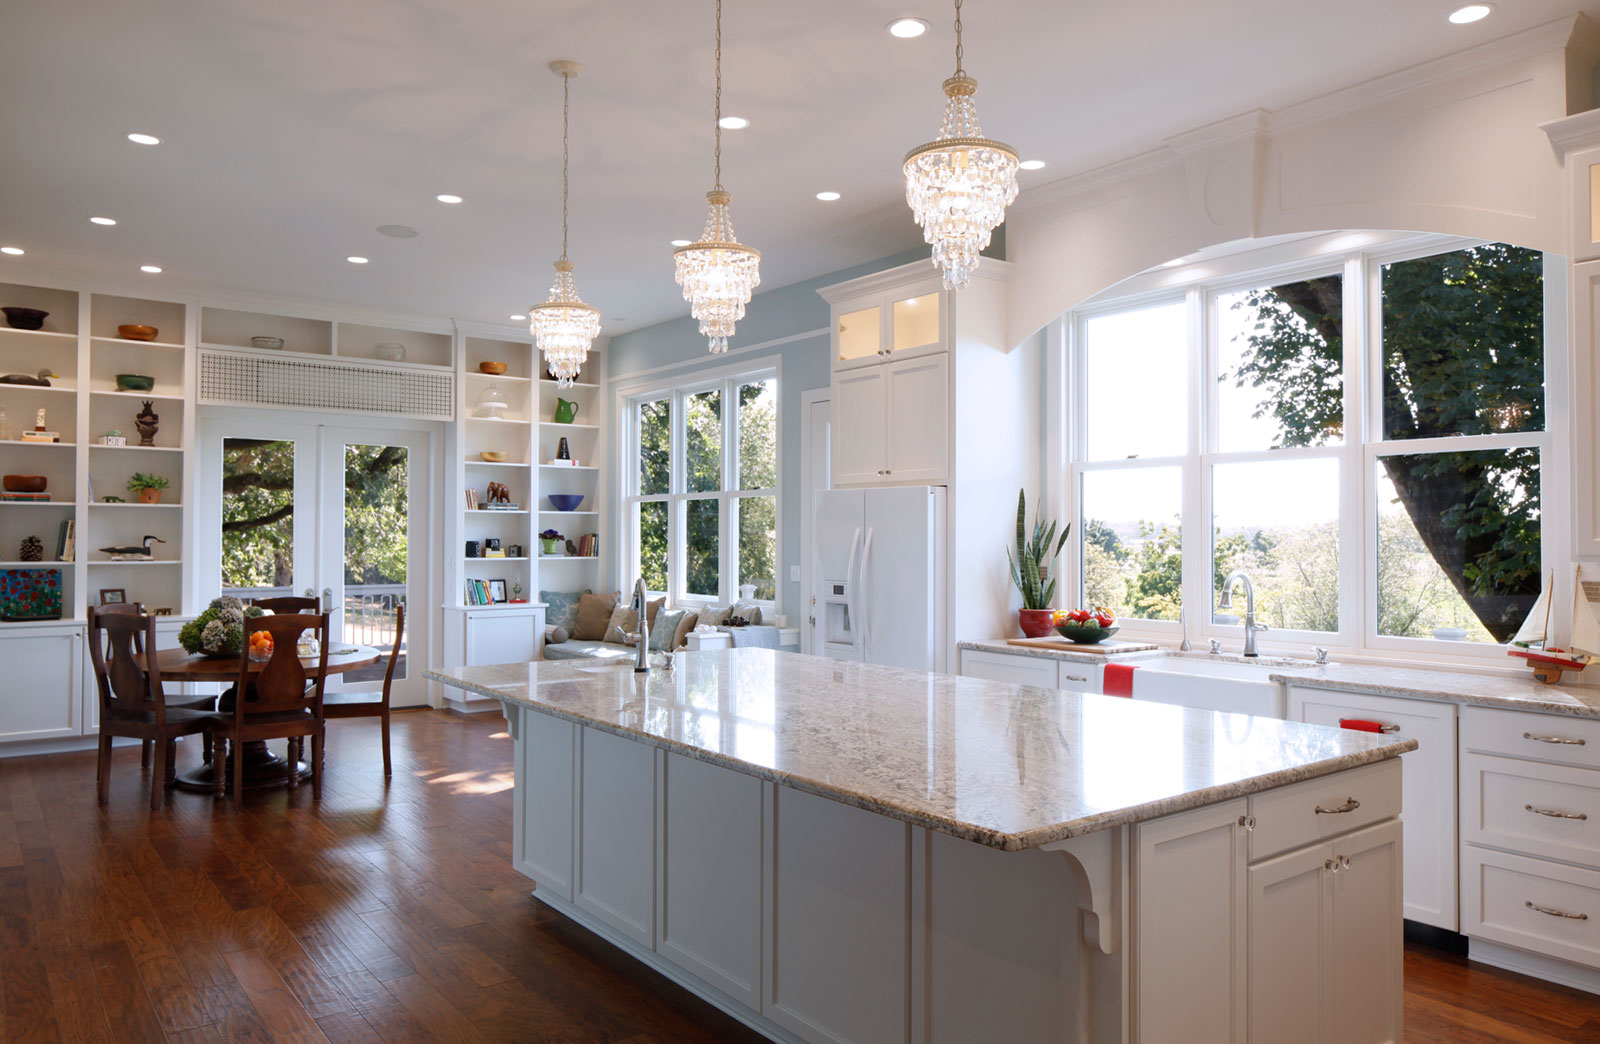 historic home remodel and addition - Henderer Design + Build, Corvallis OR